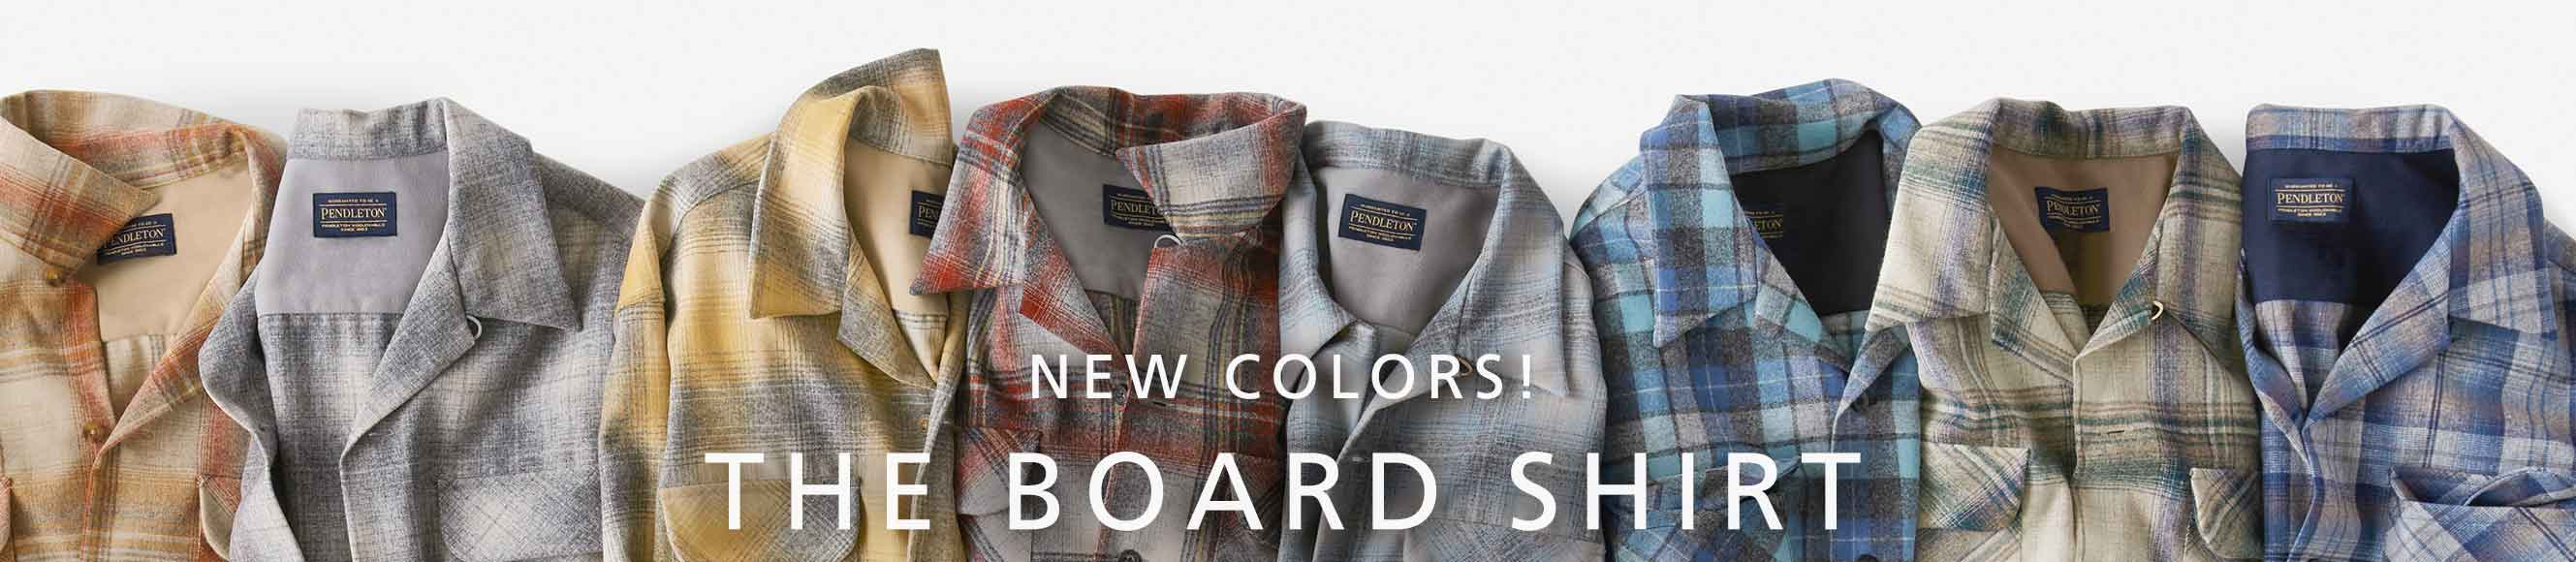 A stack of plaid wool shirts, New colors in the Board Shirt